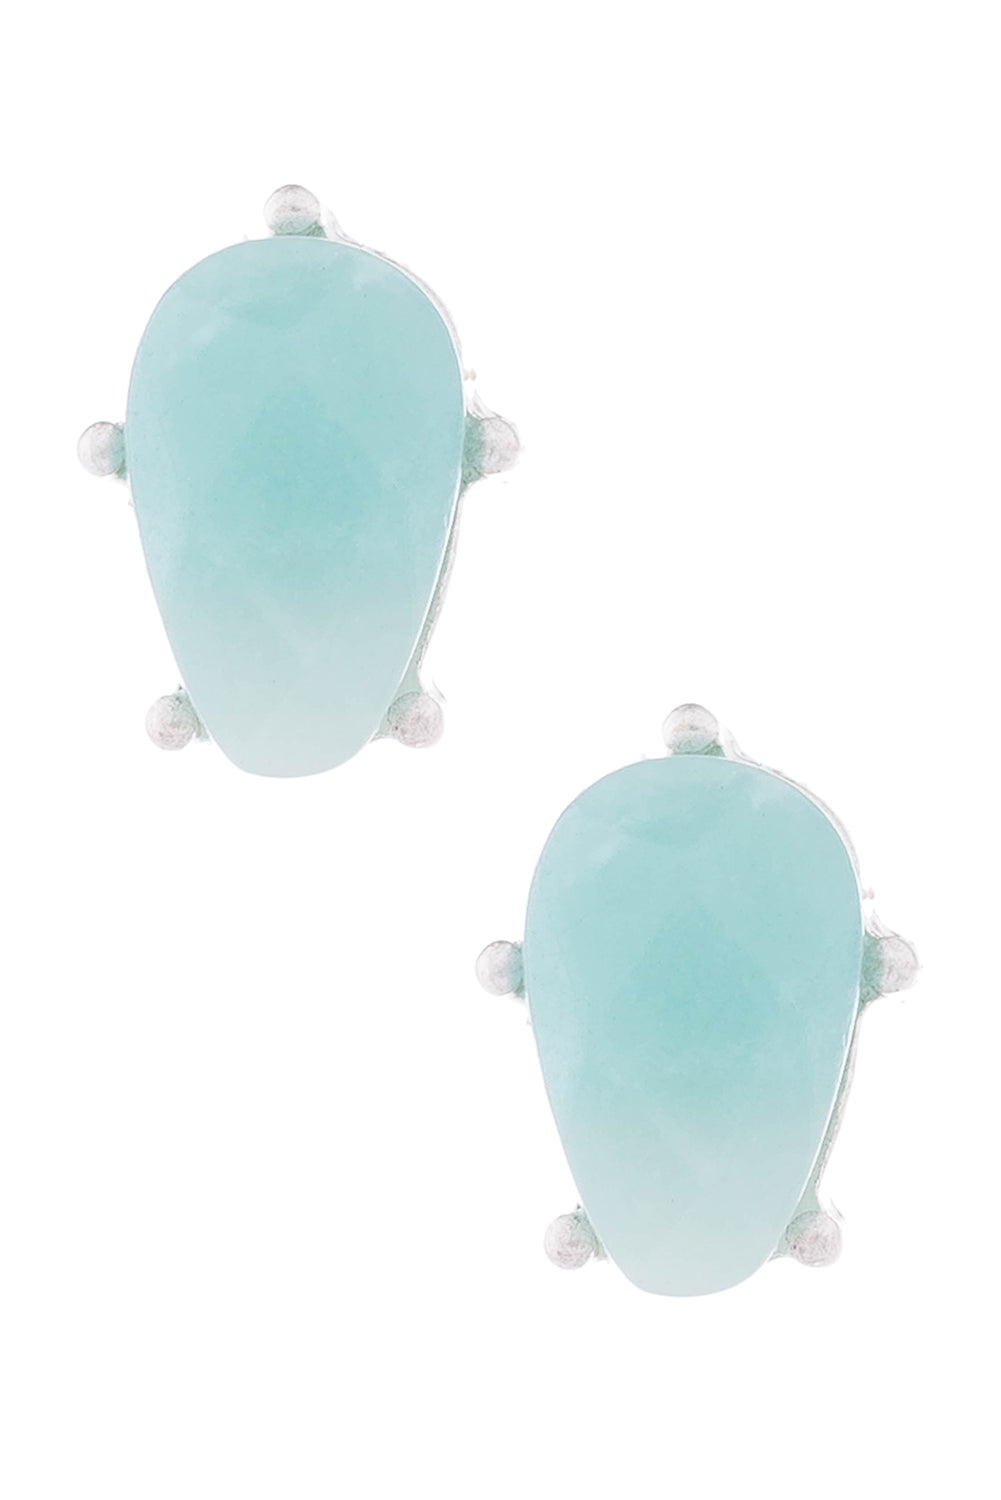 Type 2 Opal Beauty Earrings